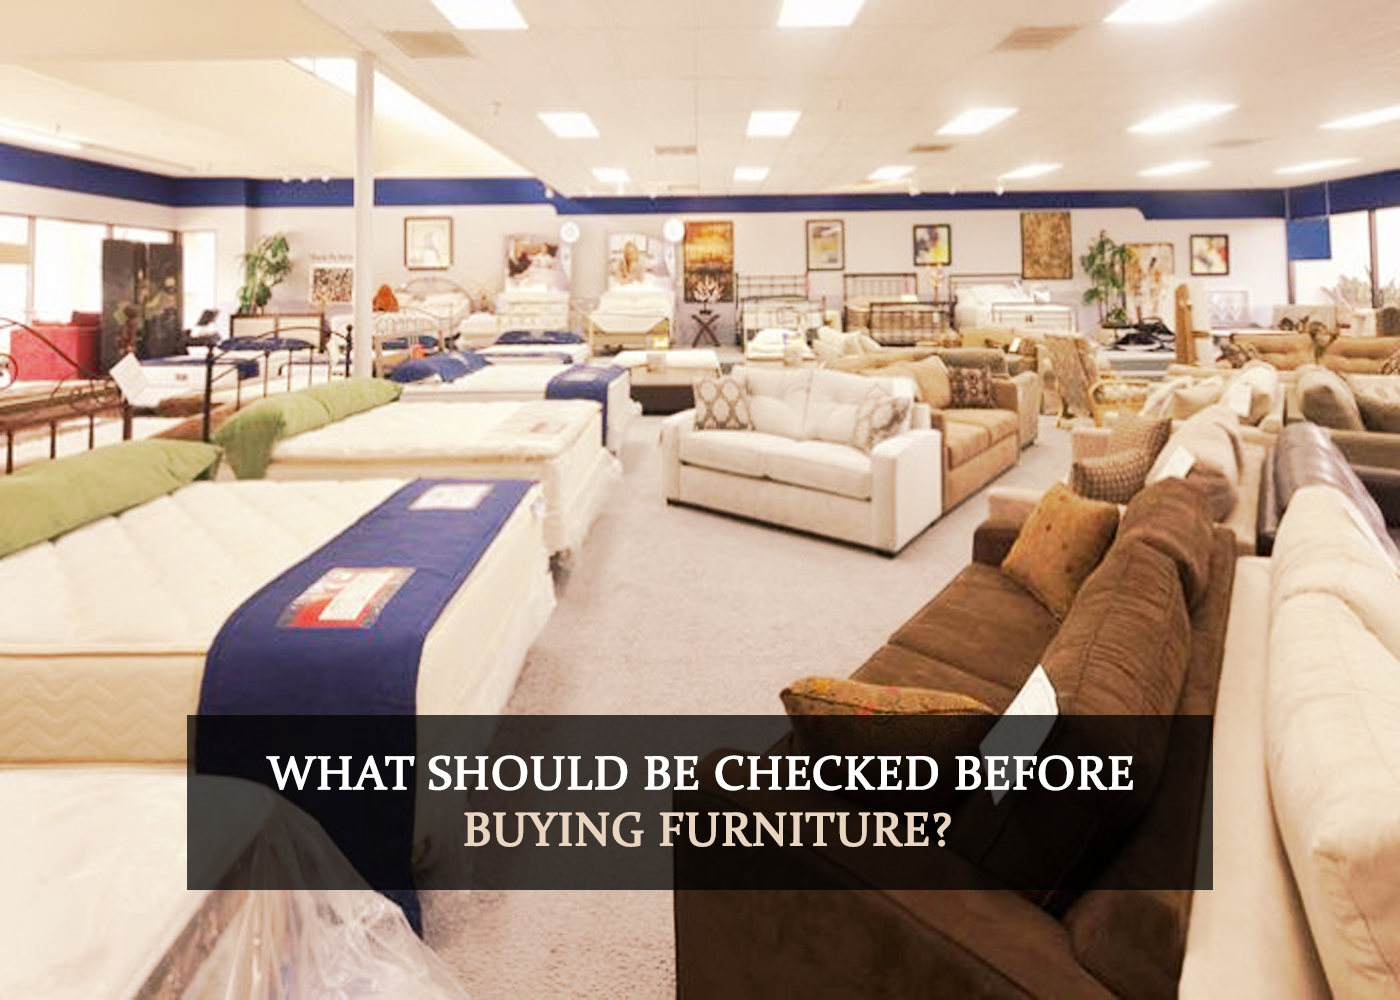 What Should Be Checked Before Buying Furniture?